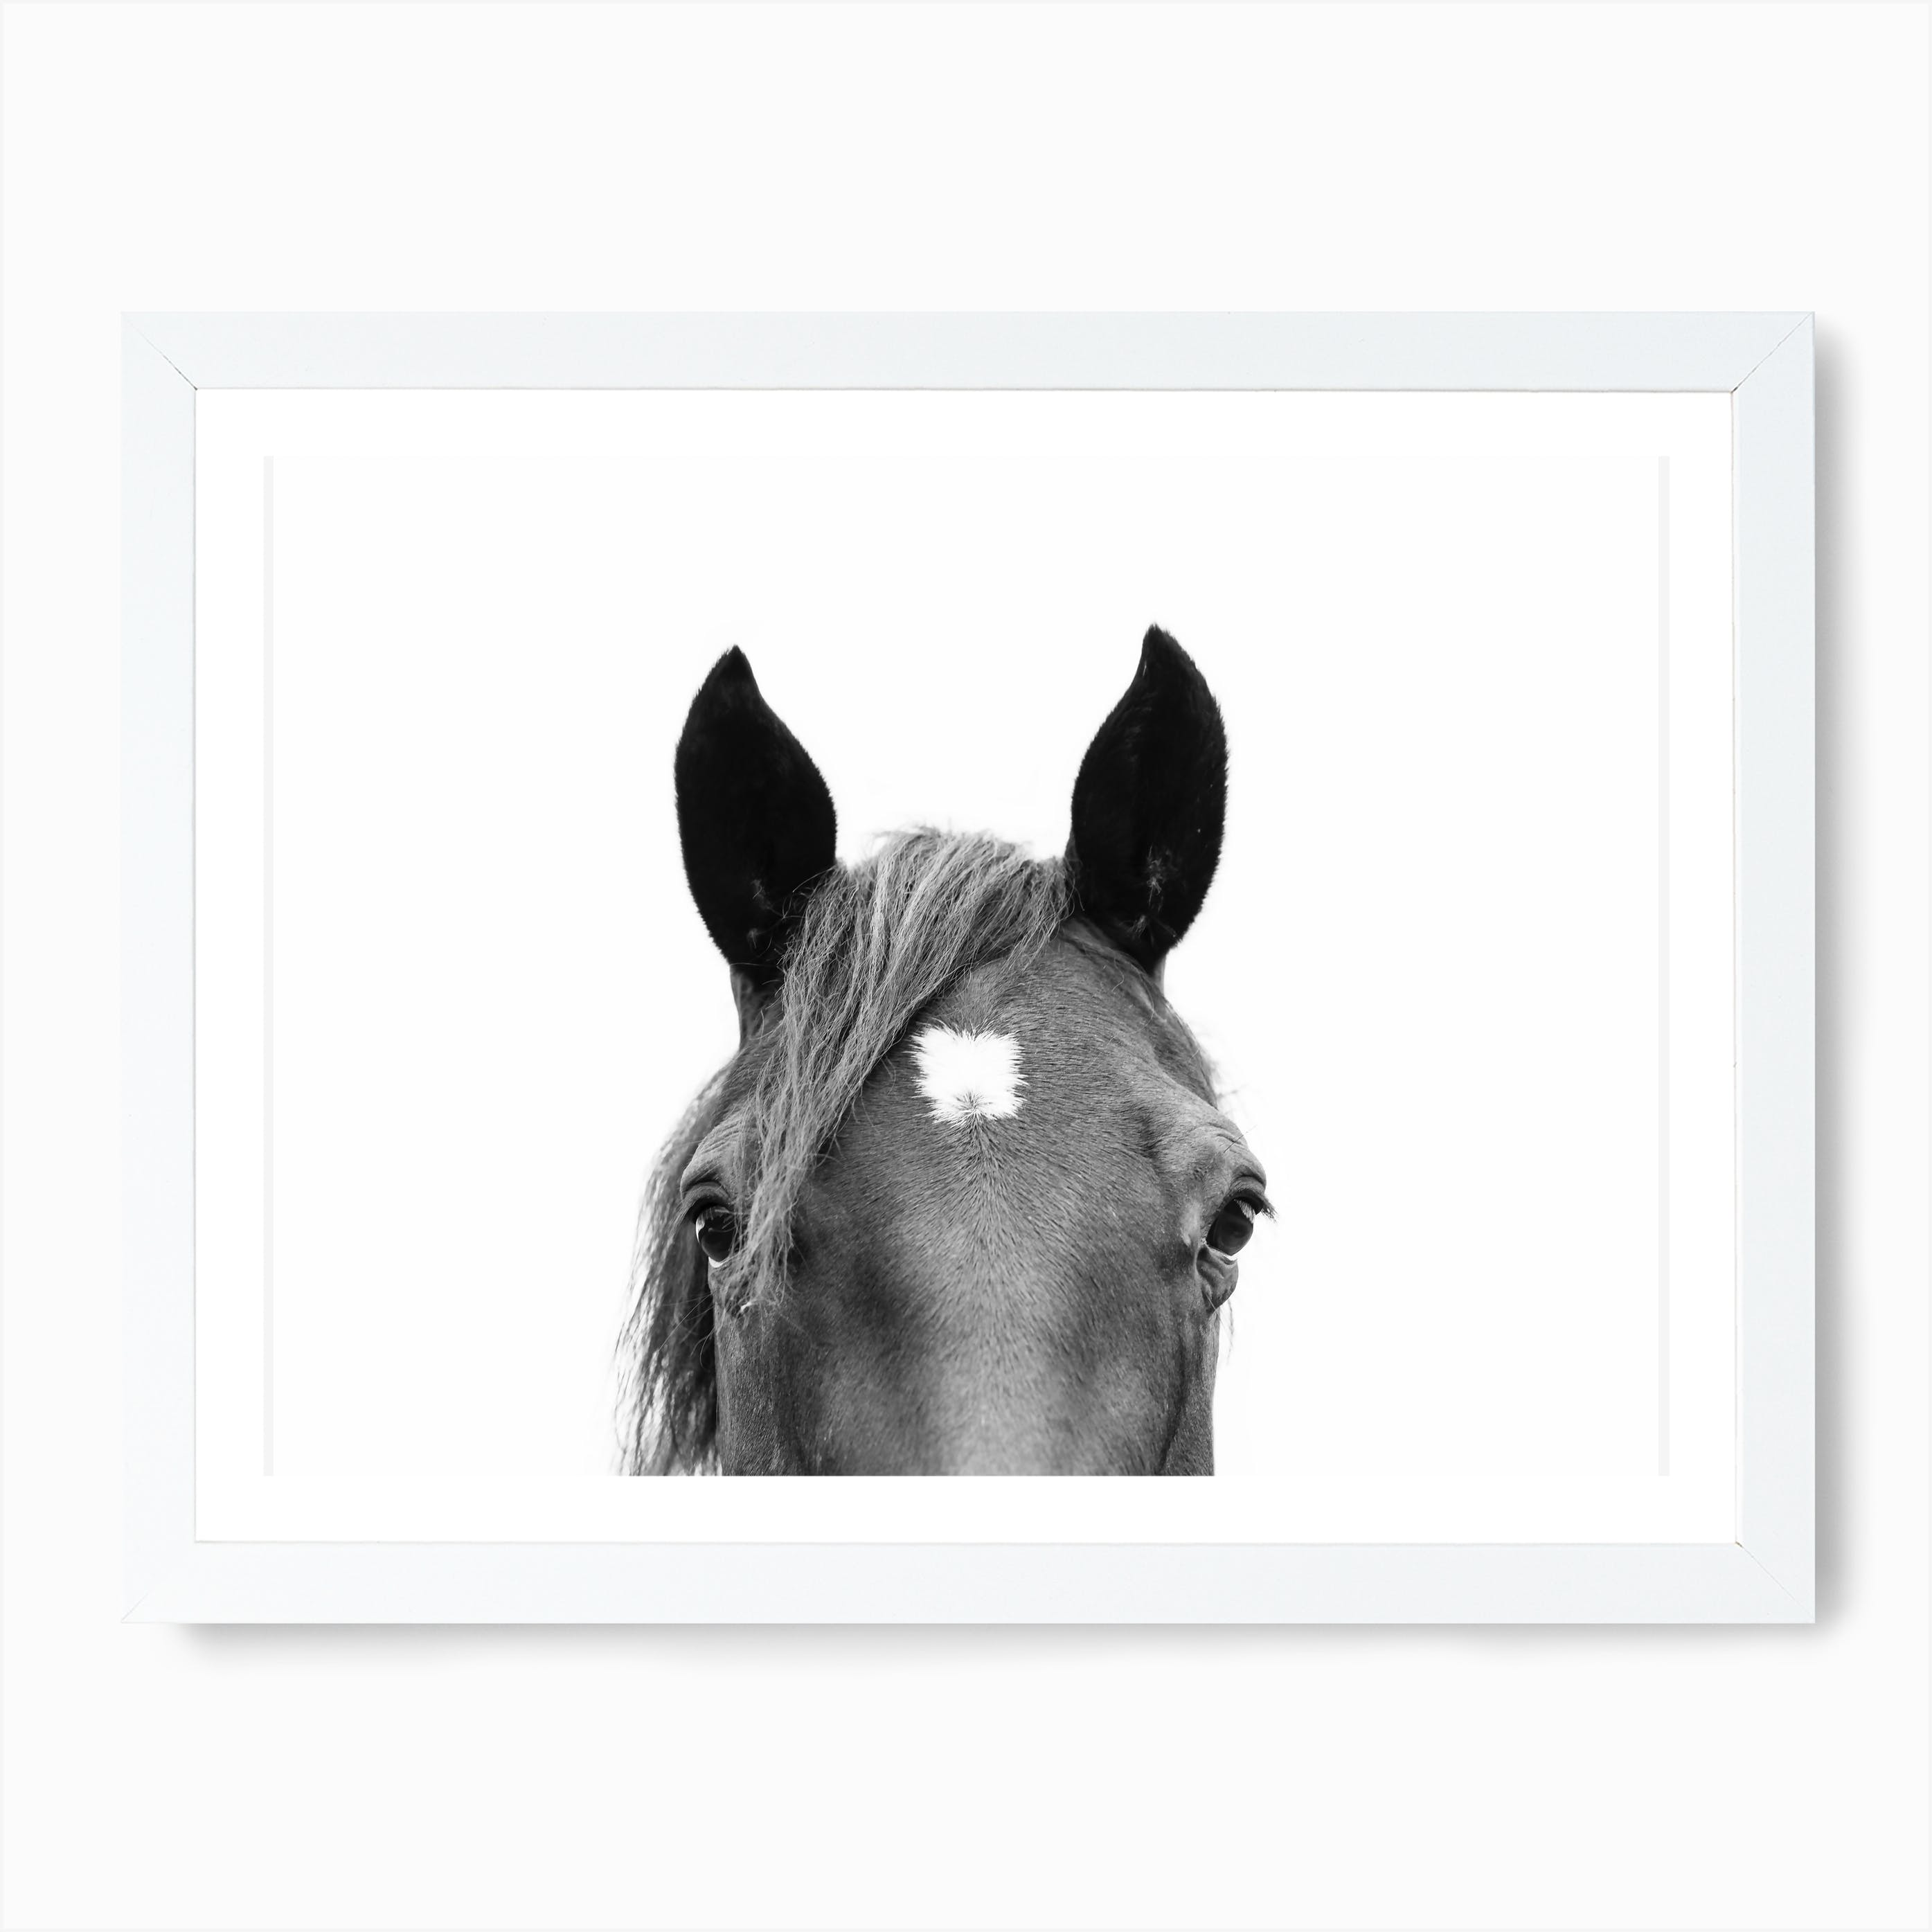 Peeking Horse Wall Art Print Free Shipping Fy